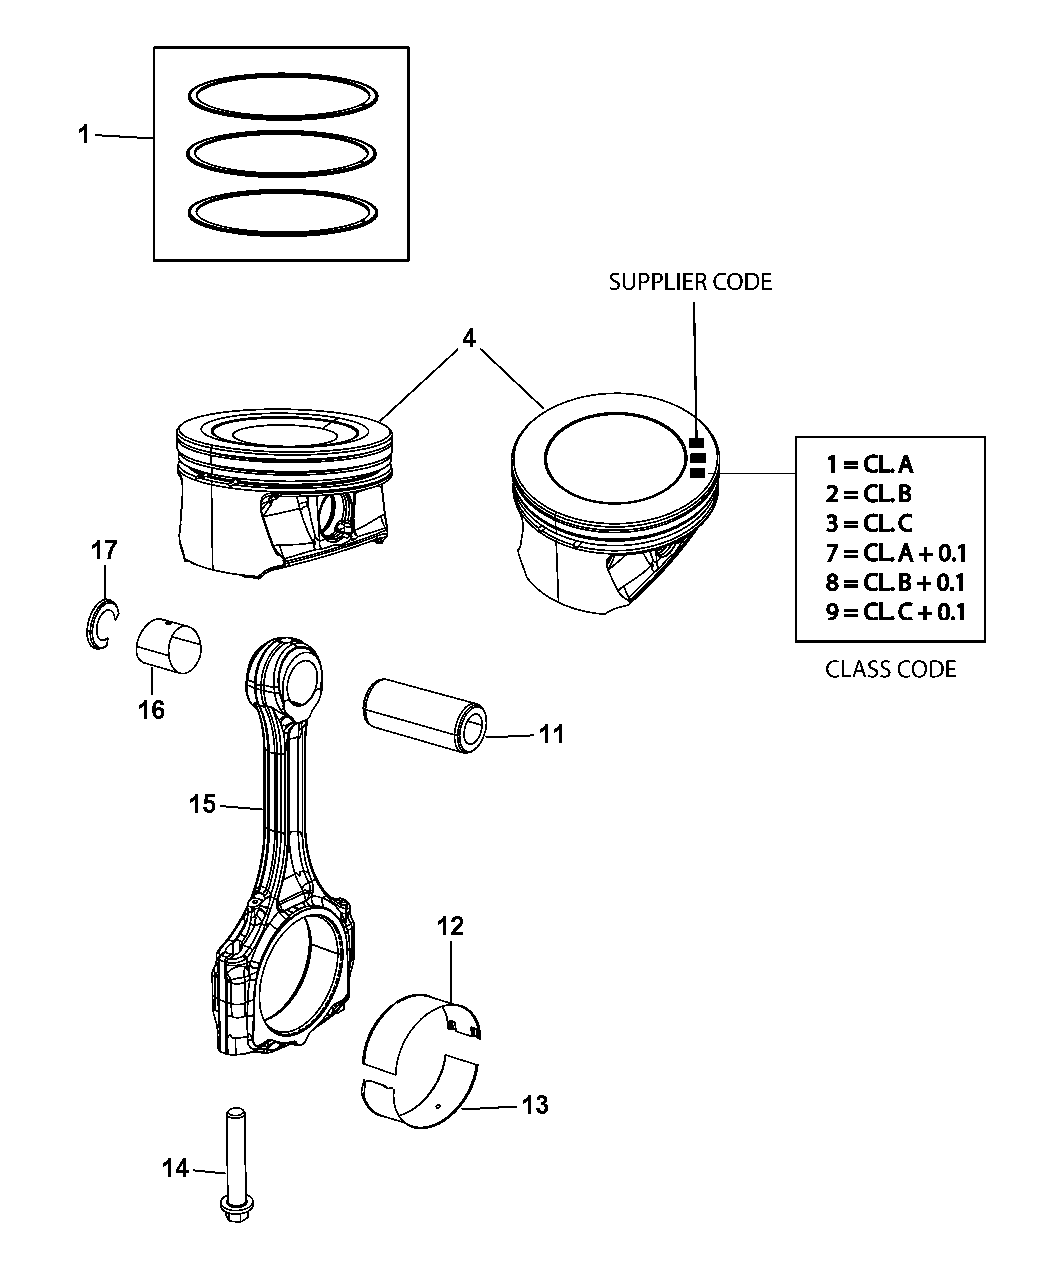 [WRG-8579] Diagram Of Auto Engine Piston